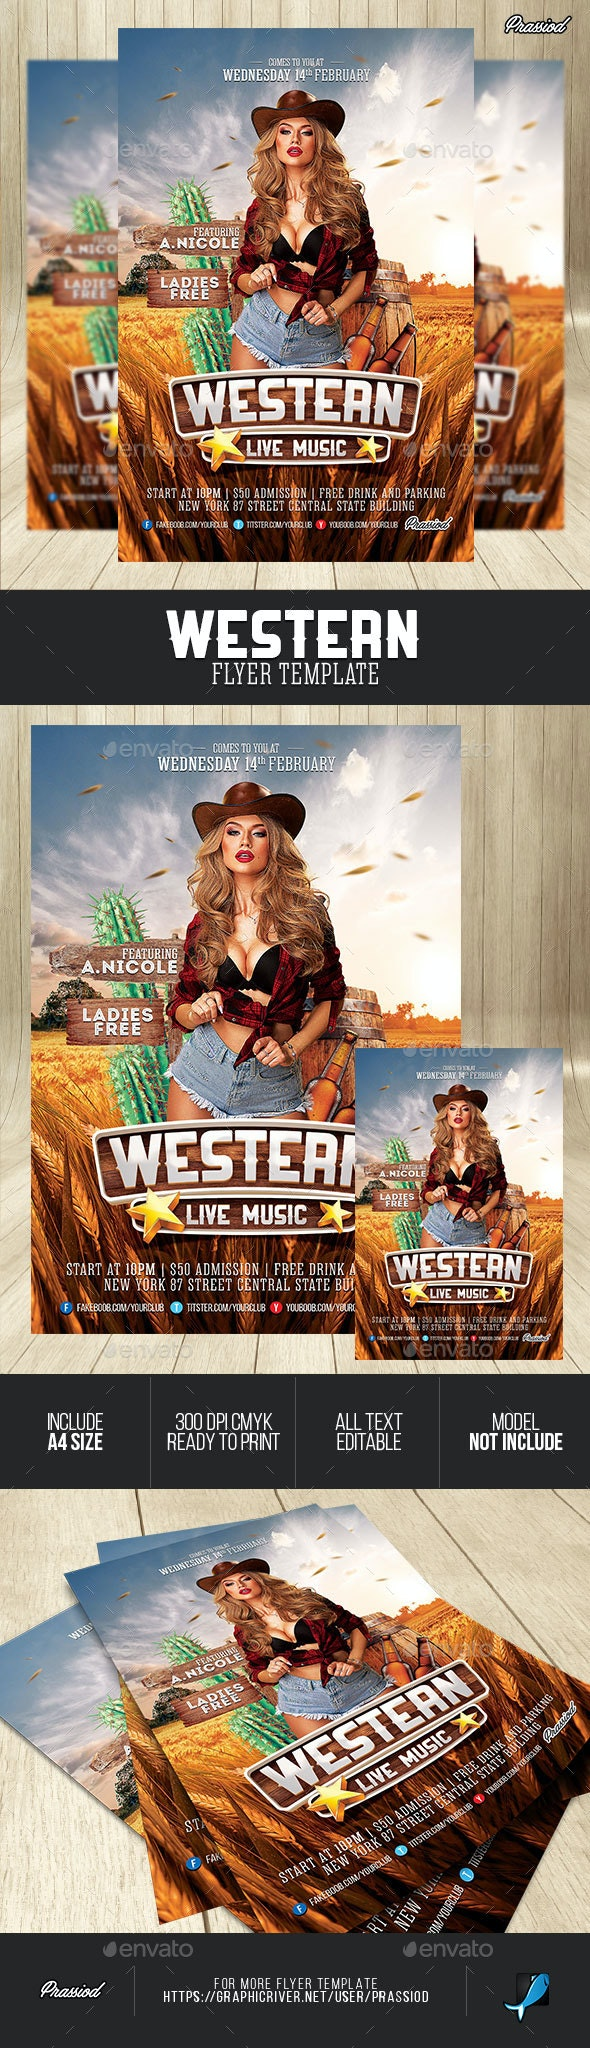 Western Flyer Template - Clubs & Parties Events